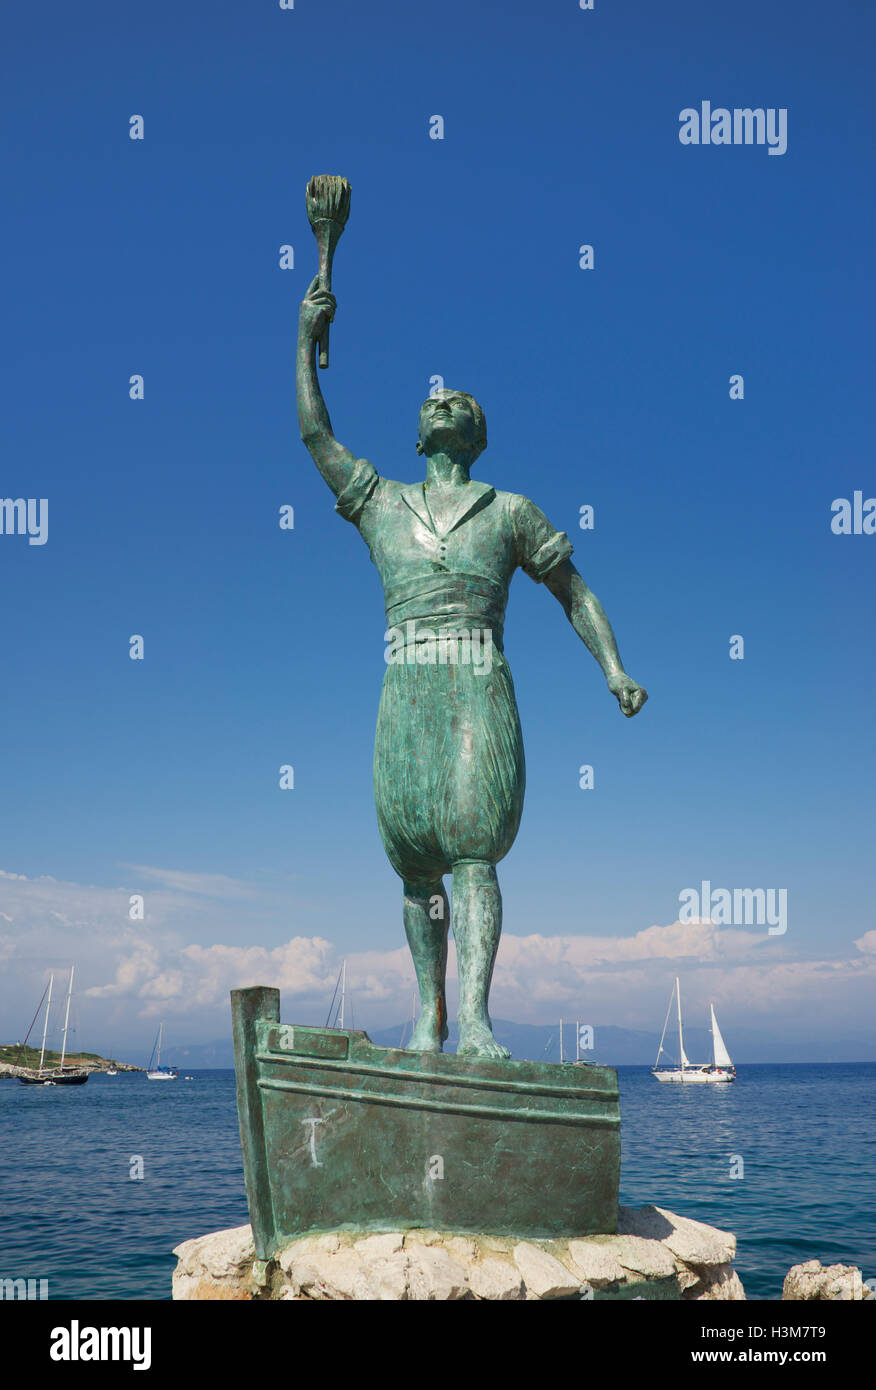 Statue of Georgios Anemogiannis entrance Gaios harbour Paxos Ionian Islands Greece - Stock Image